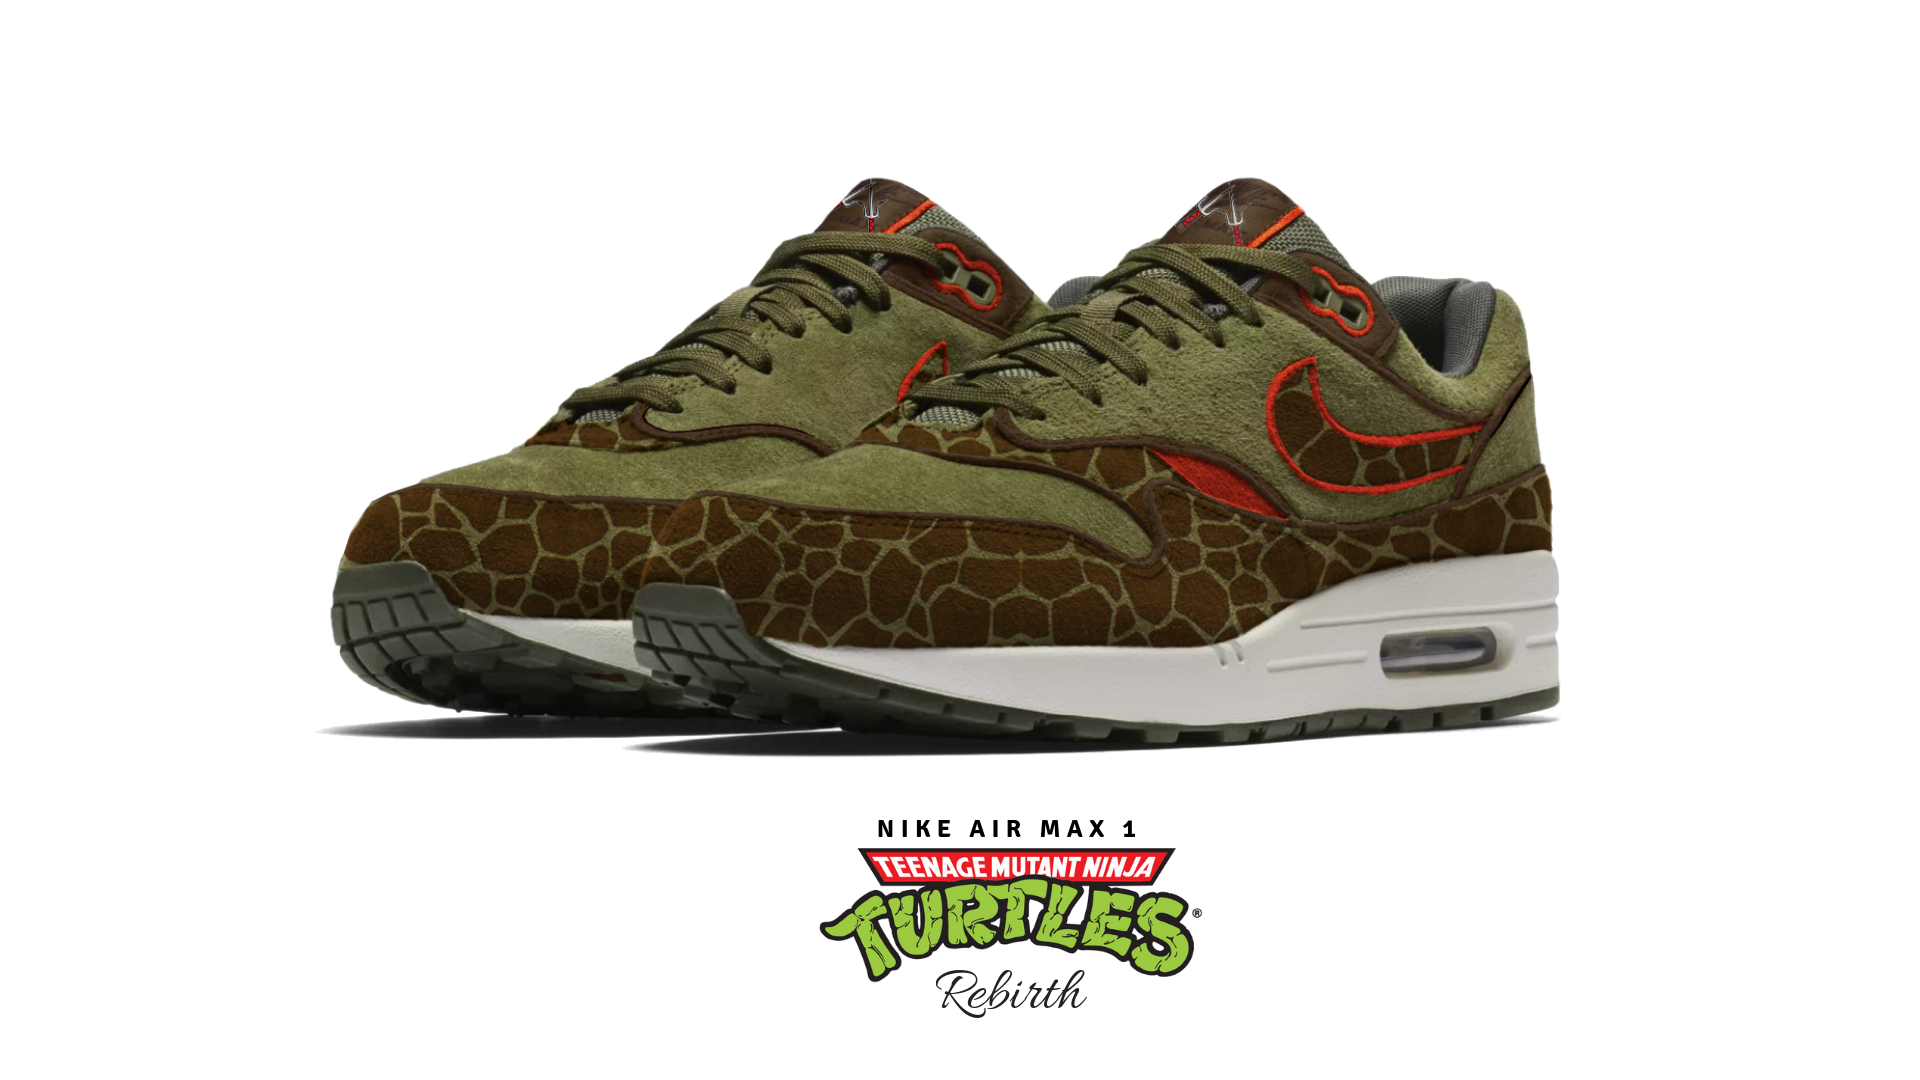 best website 5ae73 d8de3 The Nike air max 1 is one of the most iconic sneaker of Nike.We have  implented our childhood Marvel Cartoon on this sneaker. The sneaker is made  of full ...